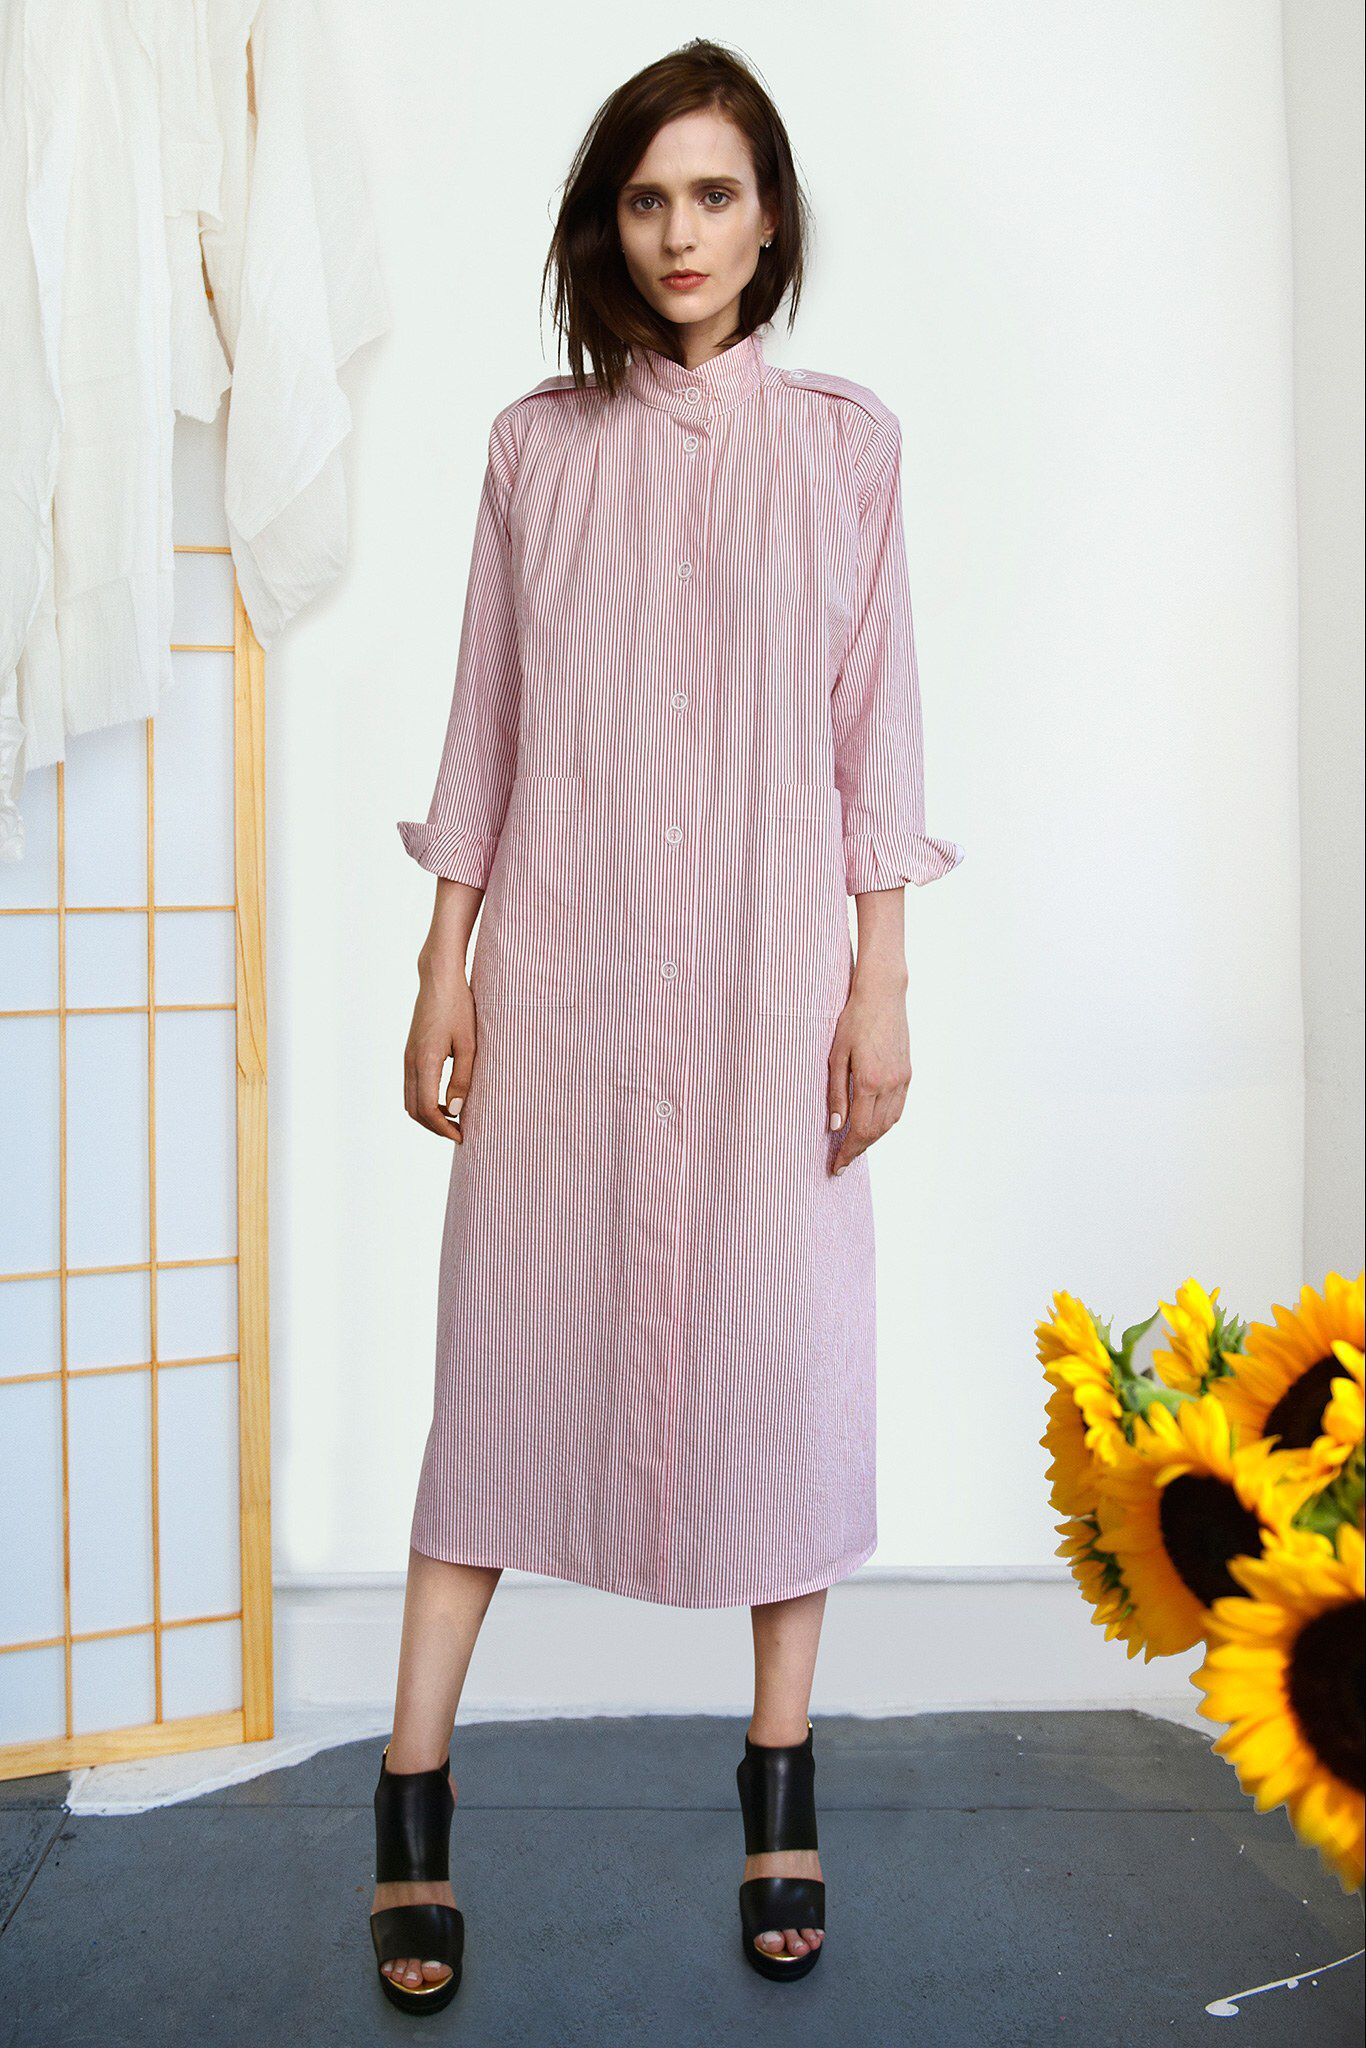 Fashion style Garments Printed in rodebjer prefall for lady